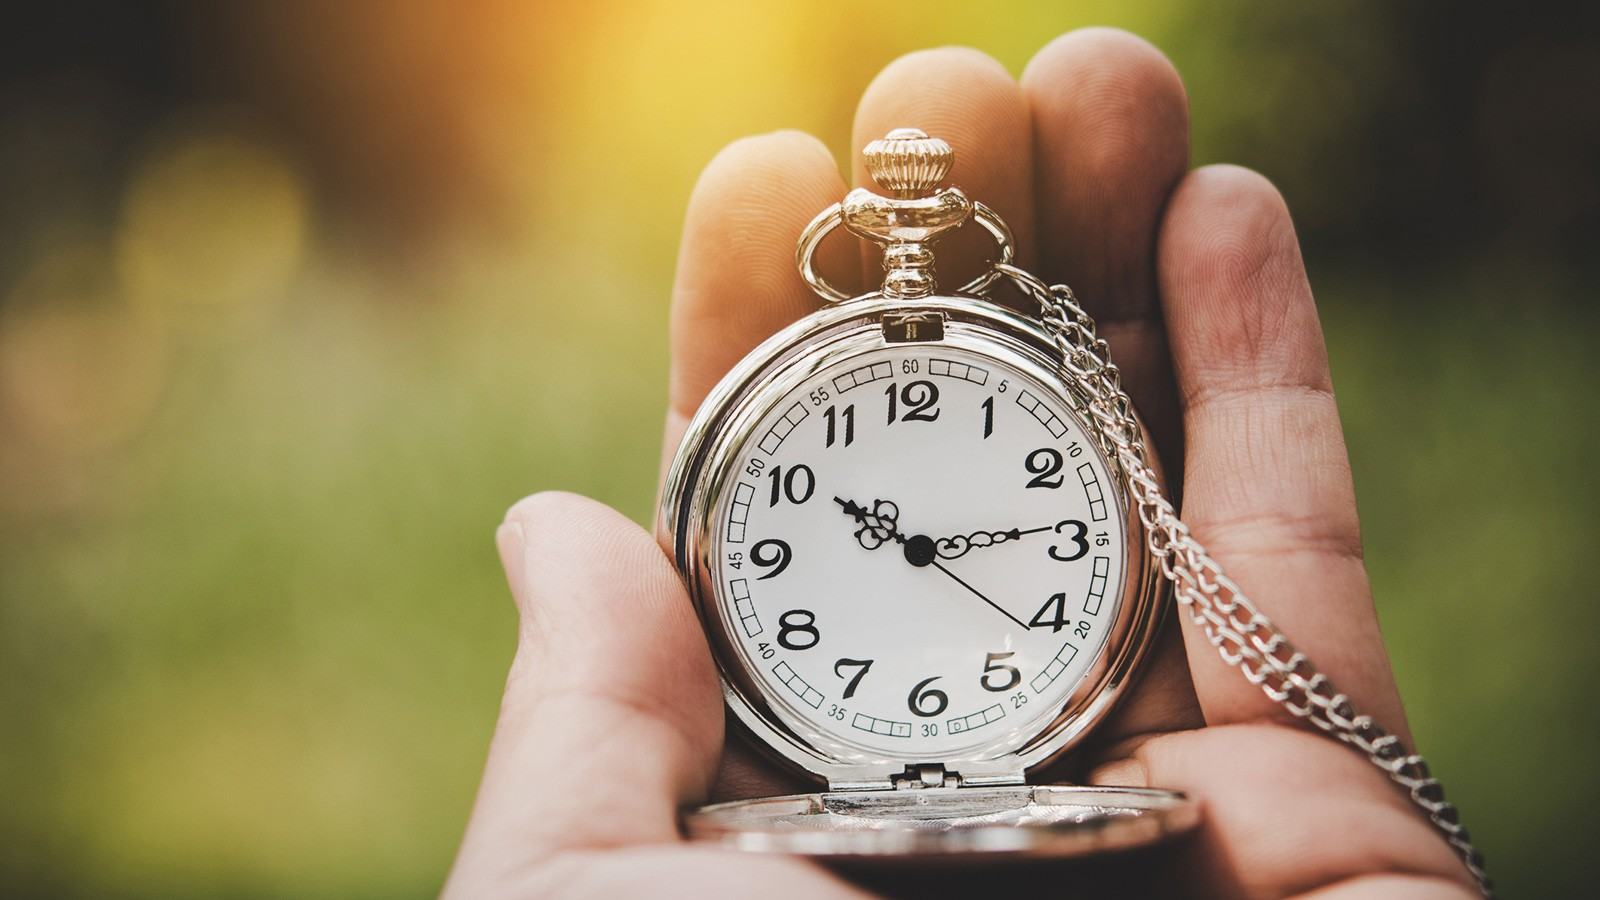 Hand holding a pocket watch